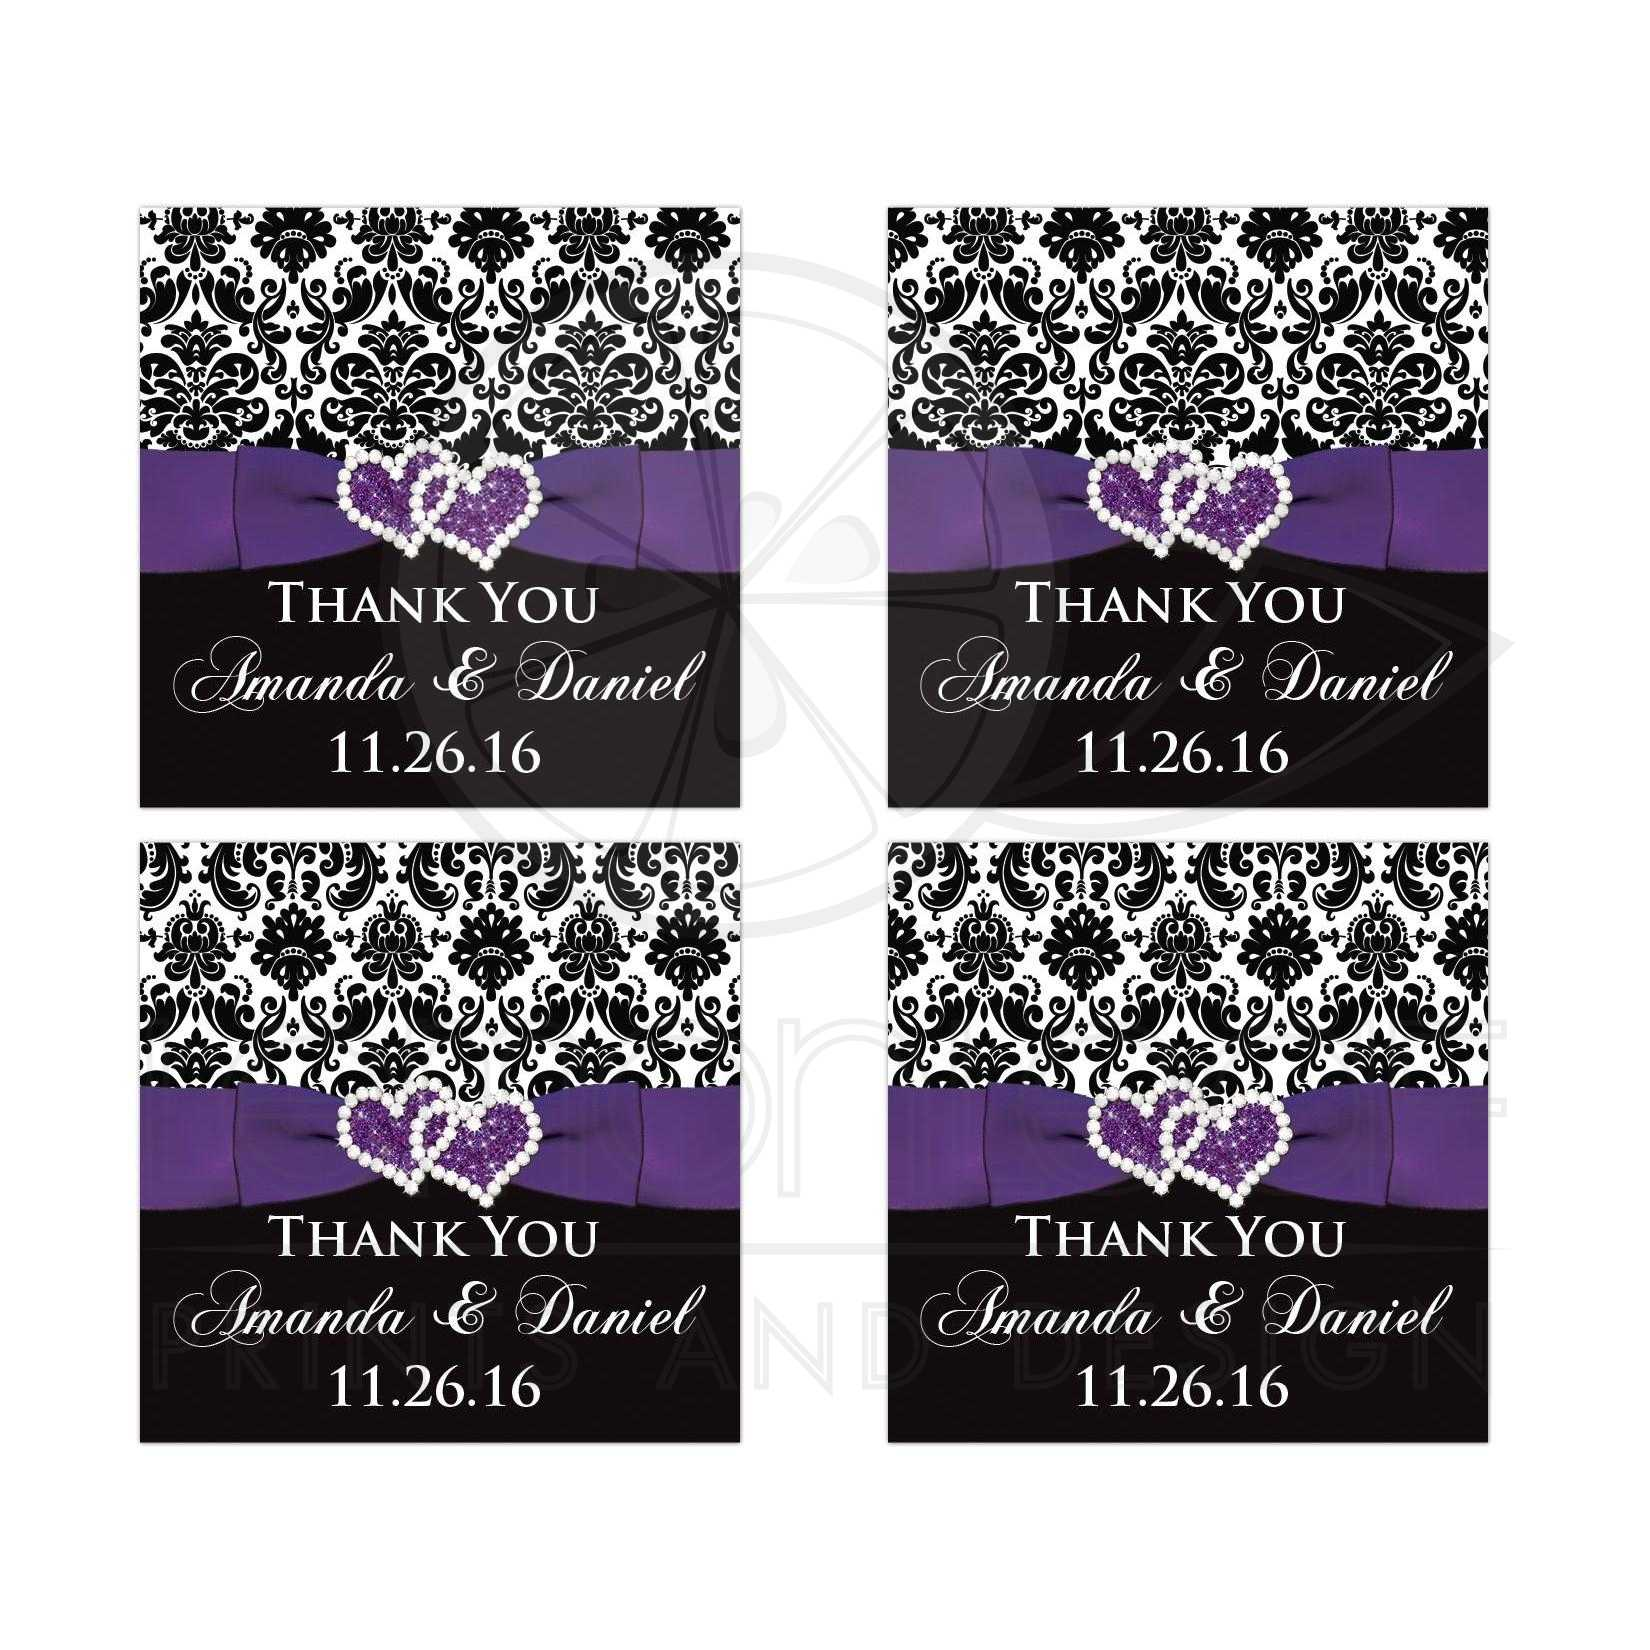 Personalized Wedding Favor Stickers Black and White Damask